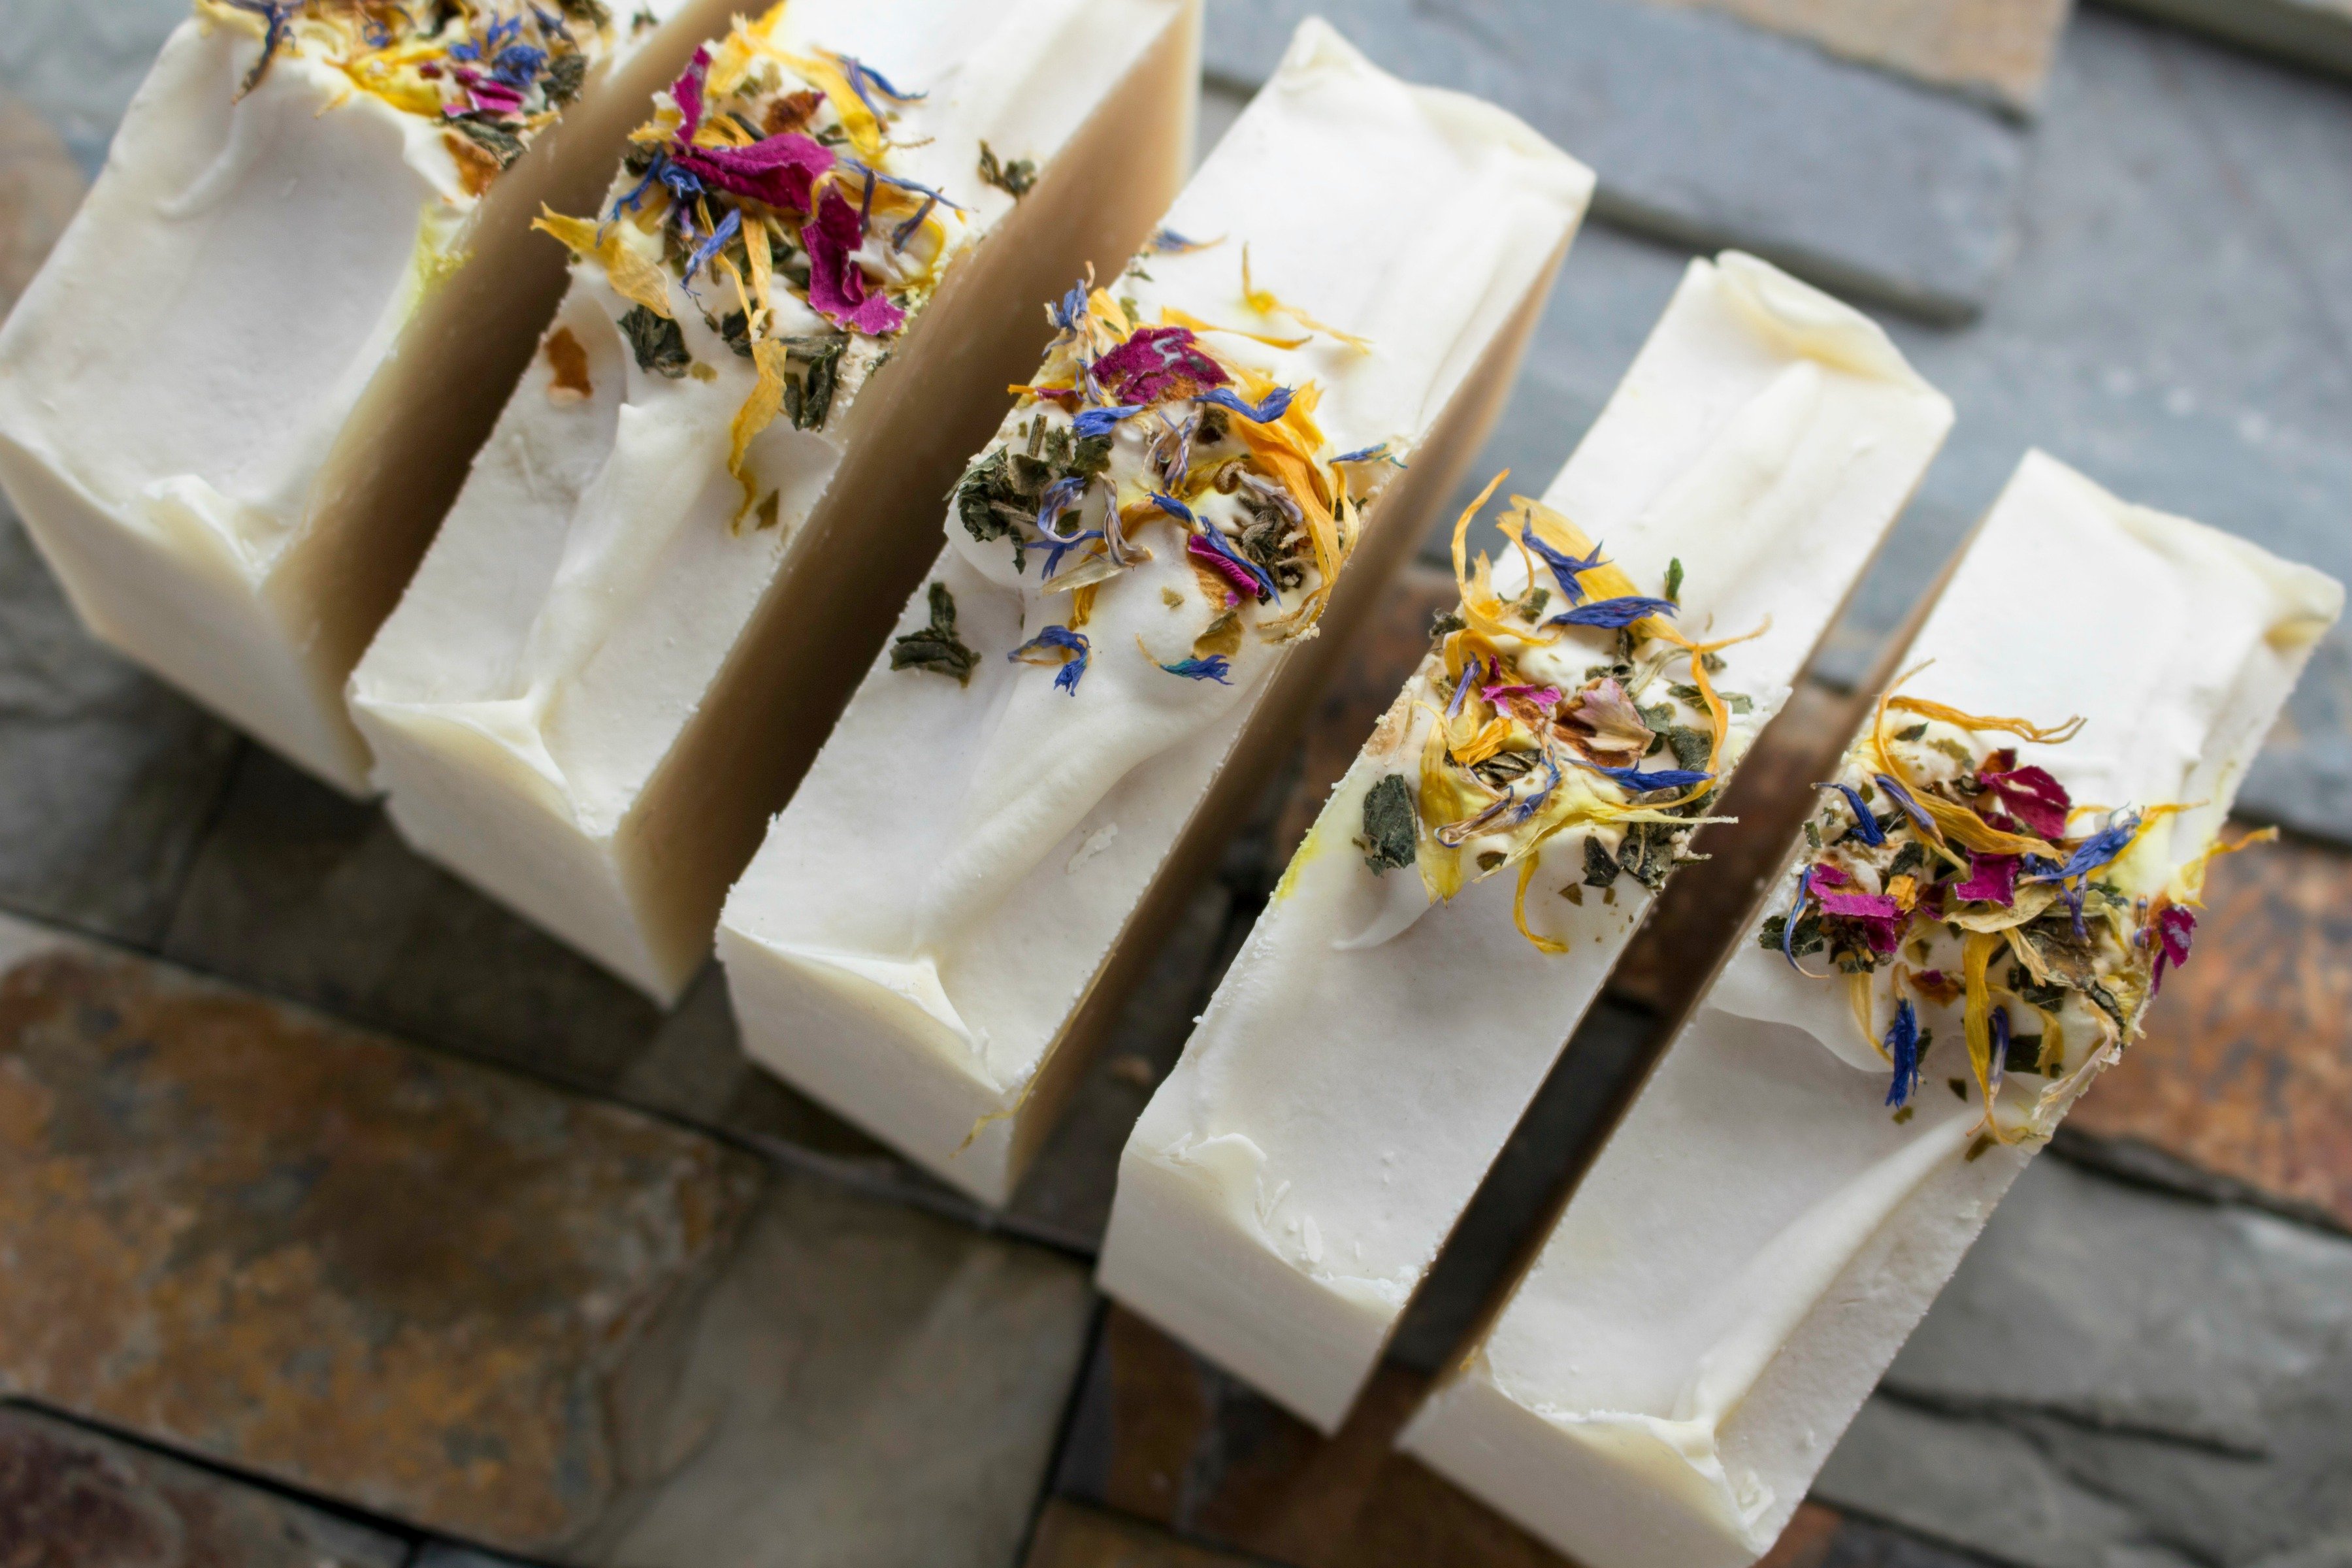 Fresh homemade bars of soap laying out with fresh herbs as a garnish